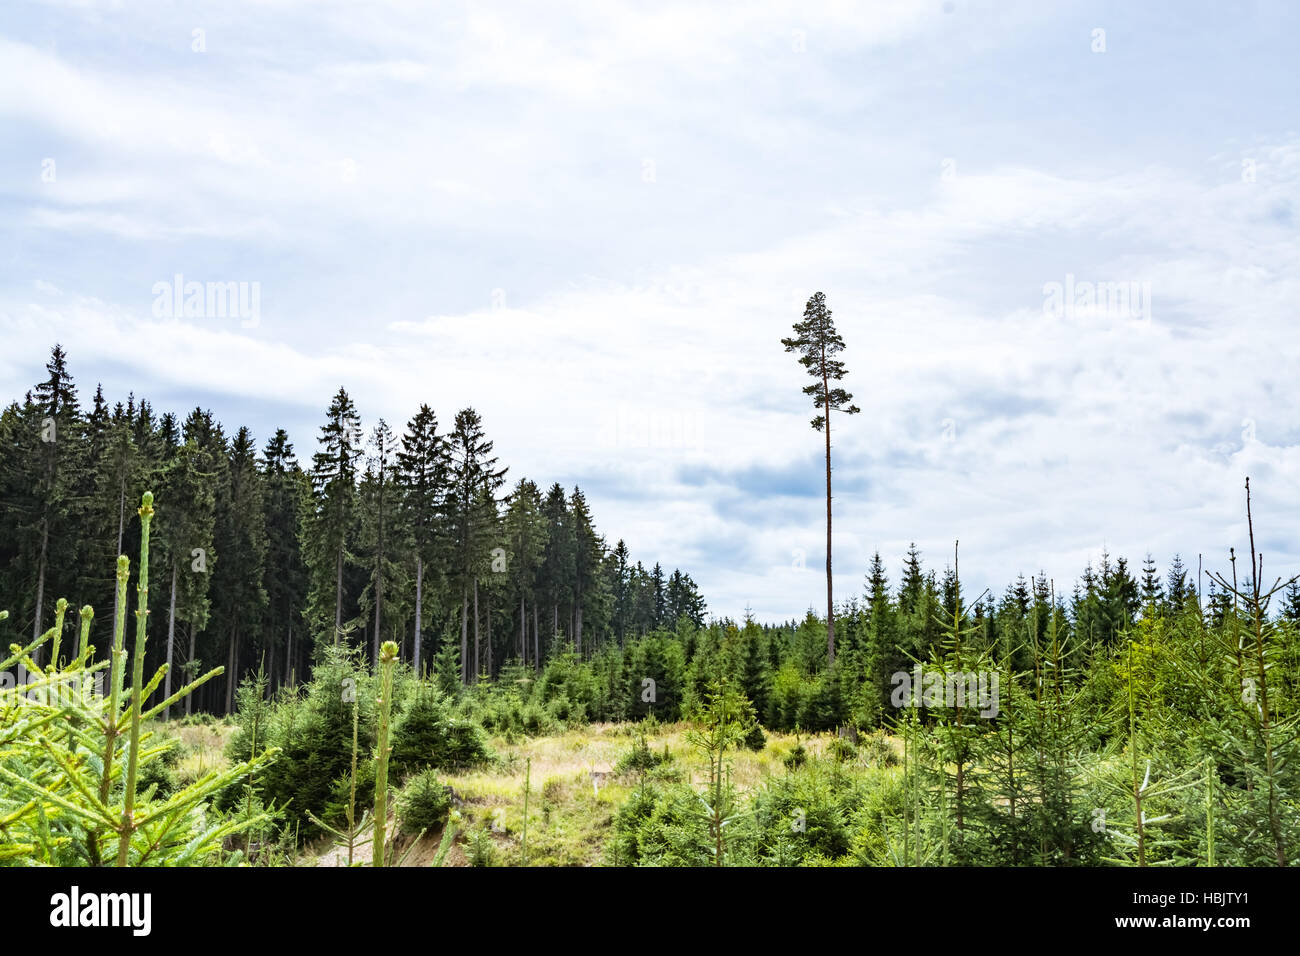 Single tall tree among younger forest - Stock Image